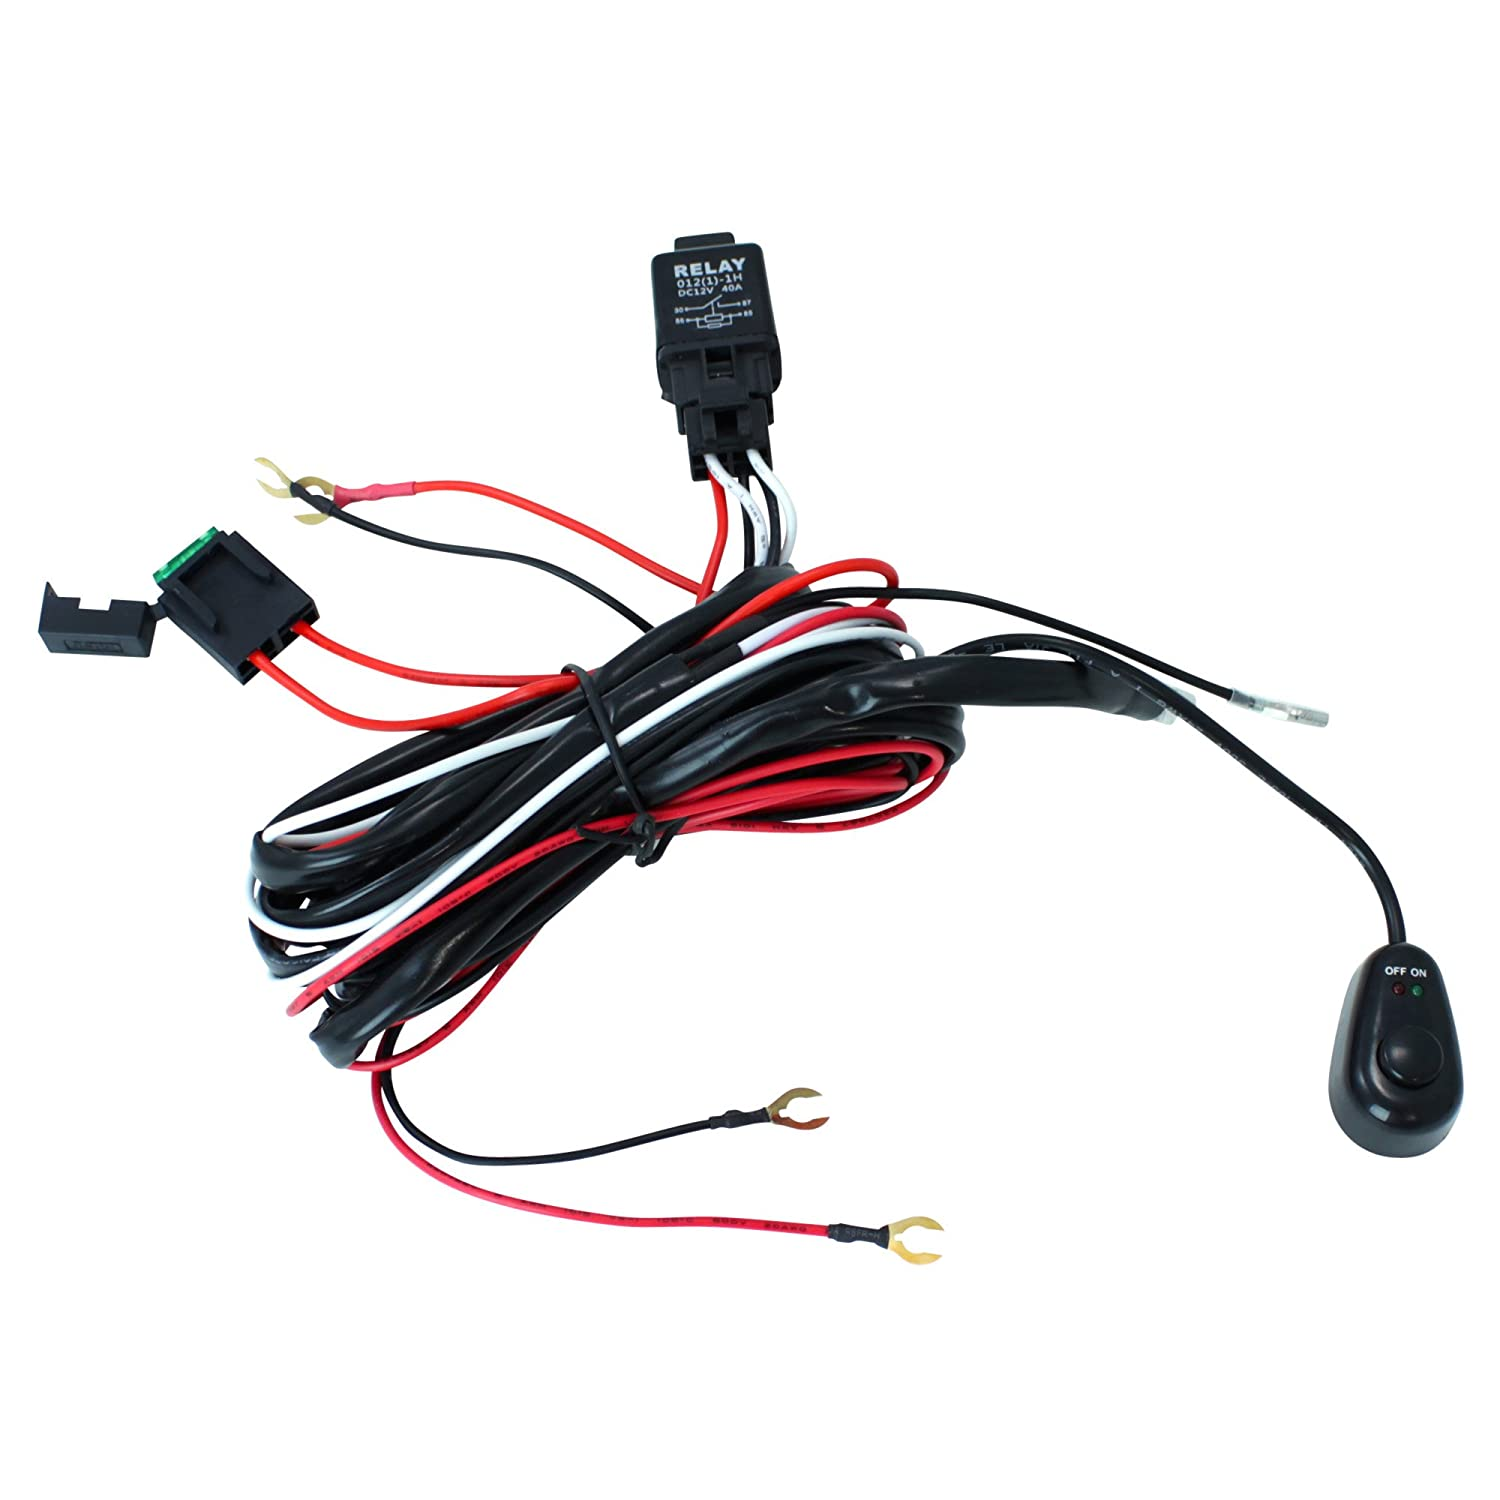 71ONjFALDCL._SL1500_ amazon com dt moto™ off road atv jeep led light bar wiring Wire Harness Assembly at virtualis.co